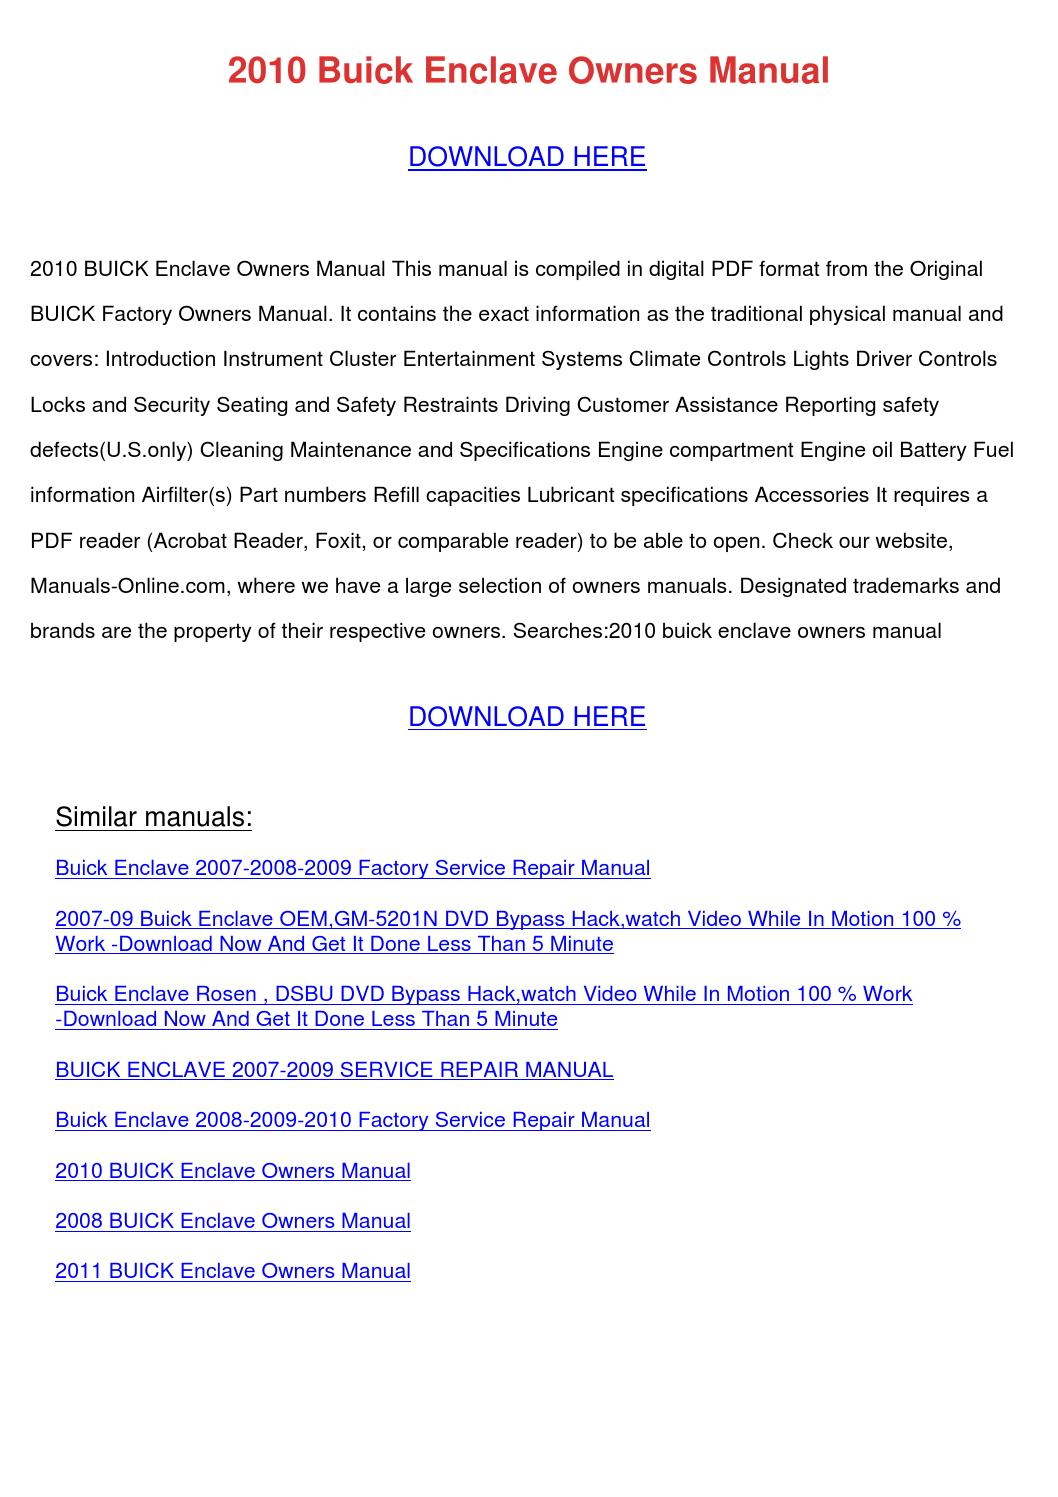 2010 Buick Enclave Owners Manual by HilarioGamez - issuu